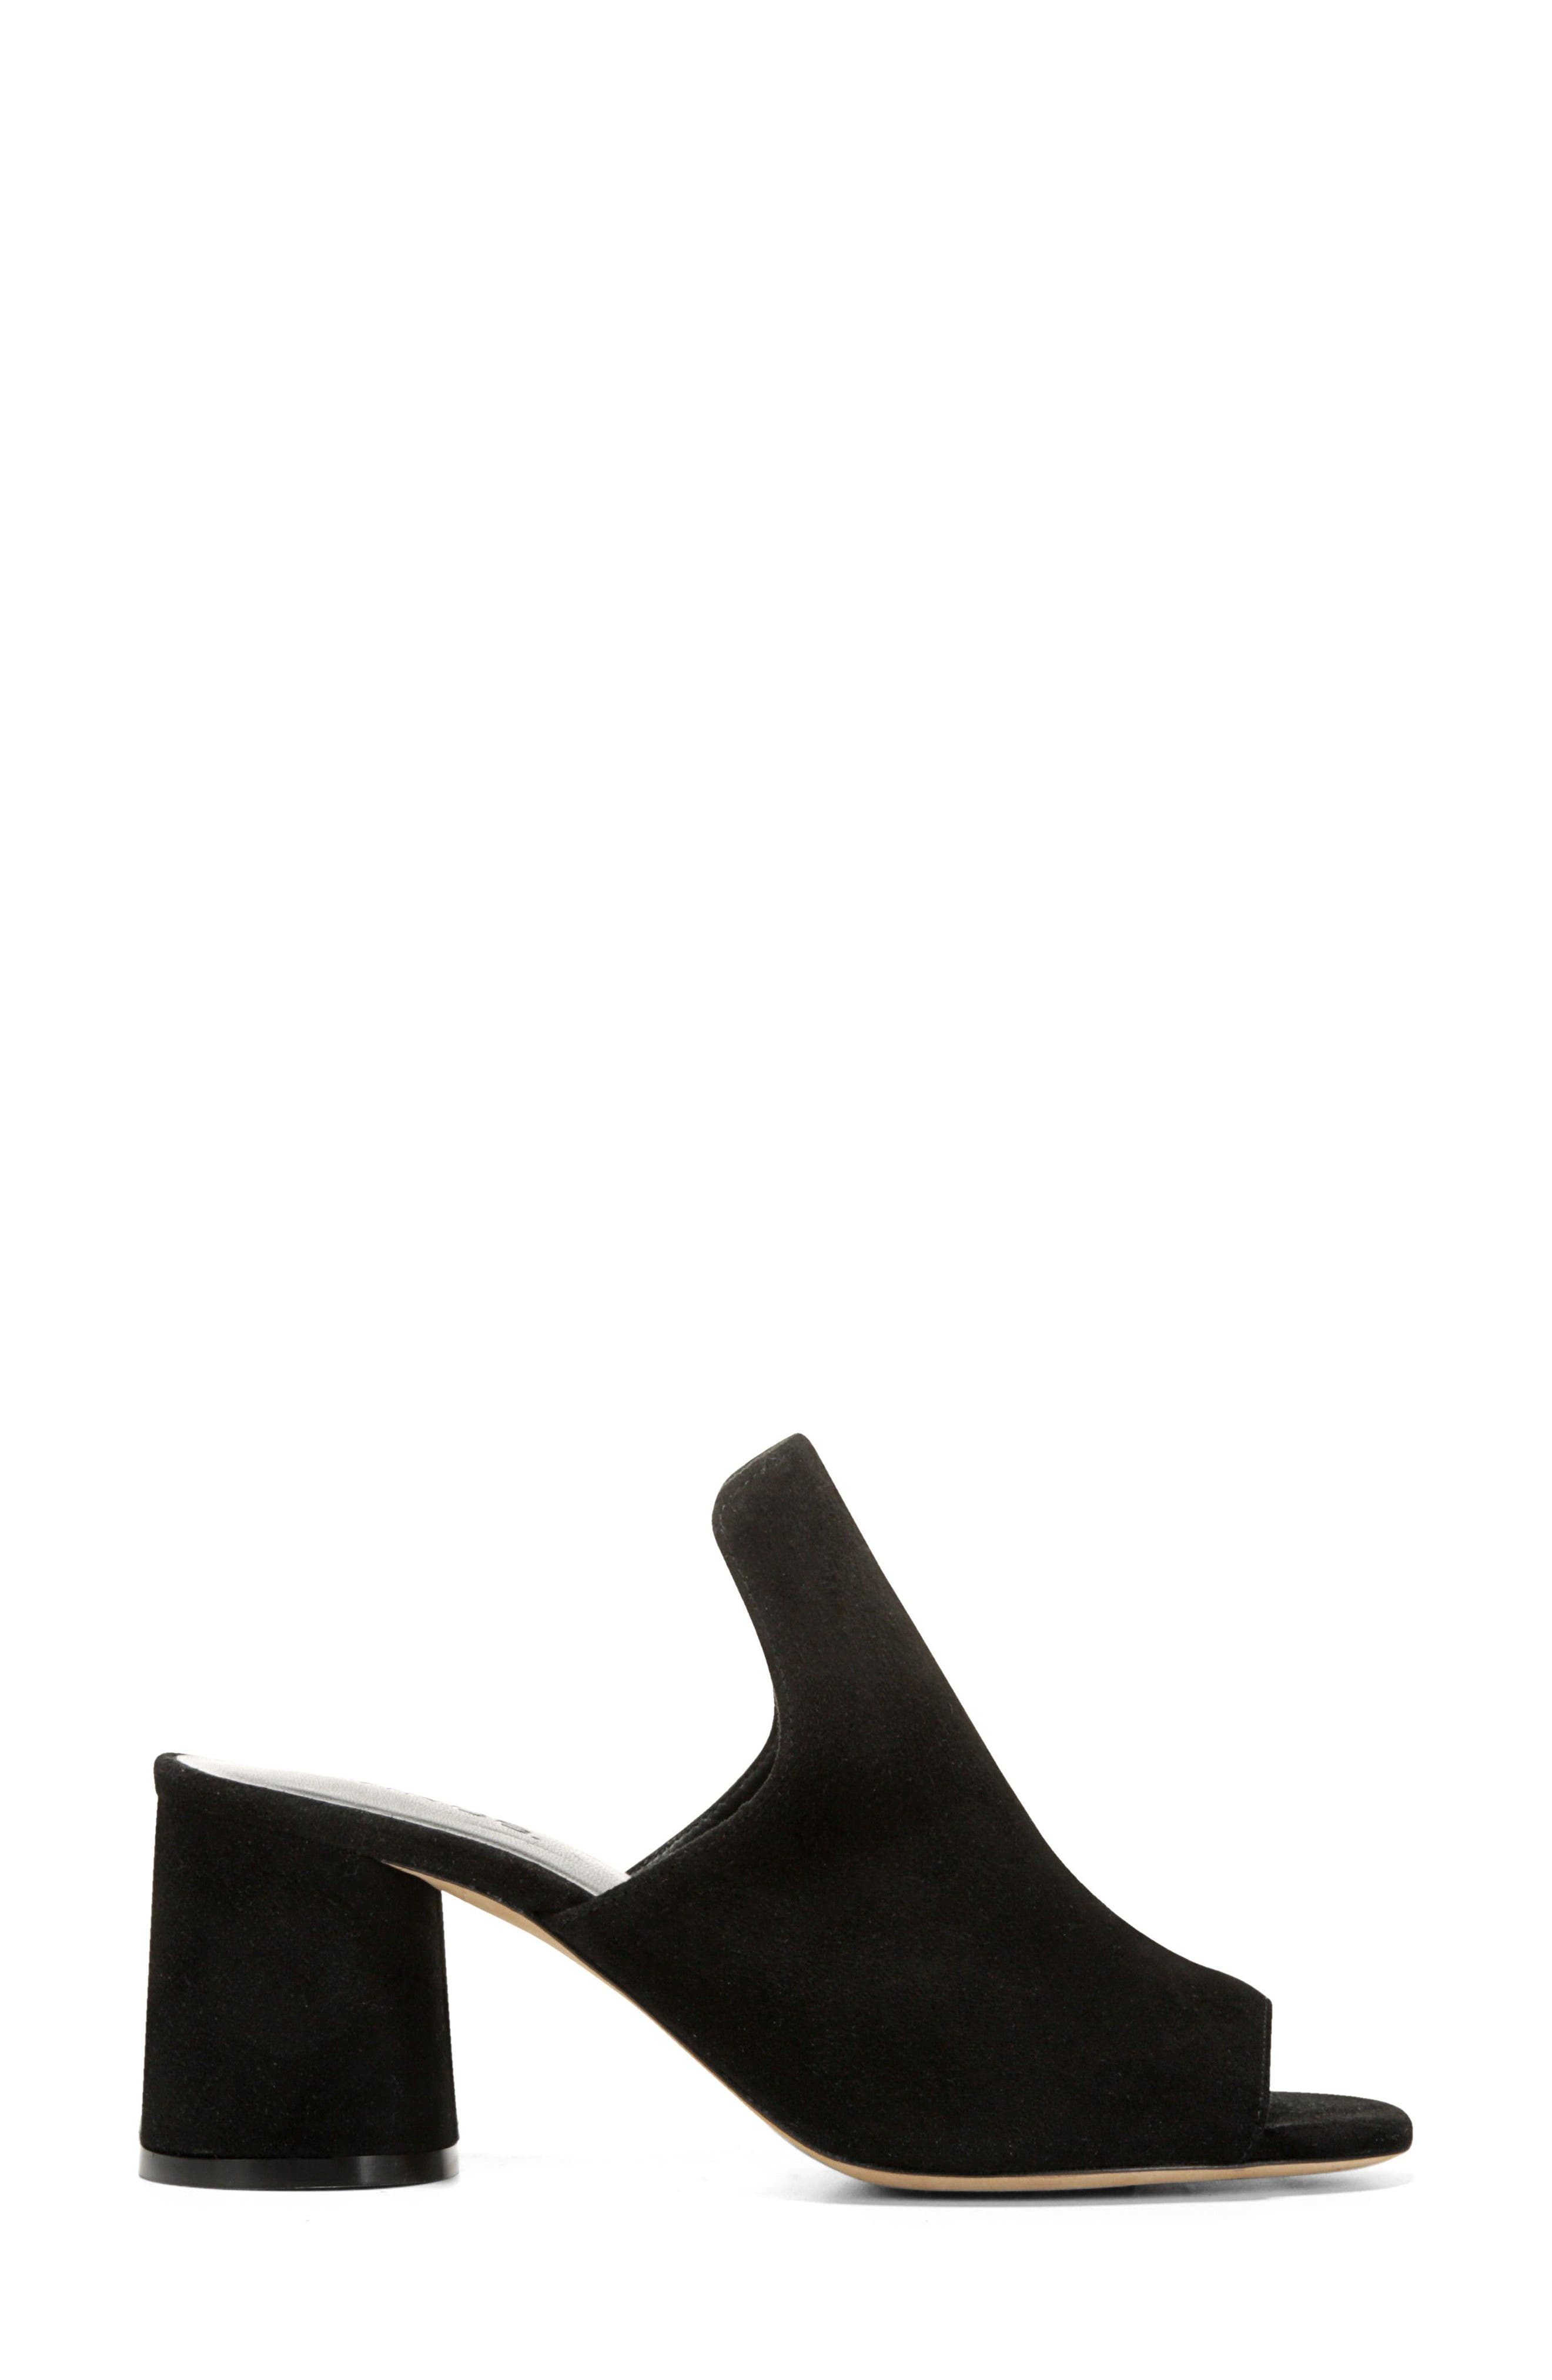 Tanay Loafer Mule,                             Alternate thumbnail 3, color,                             BLACK SUEDE LEATHER